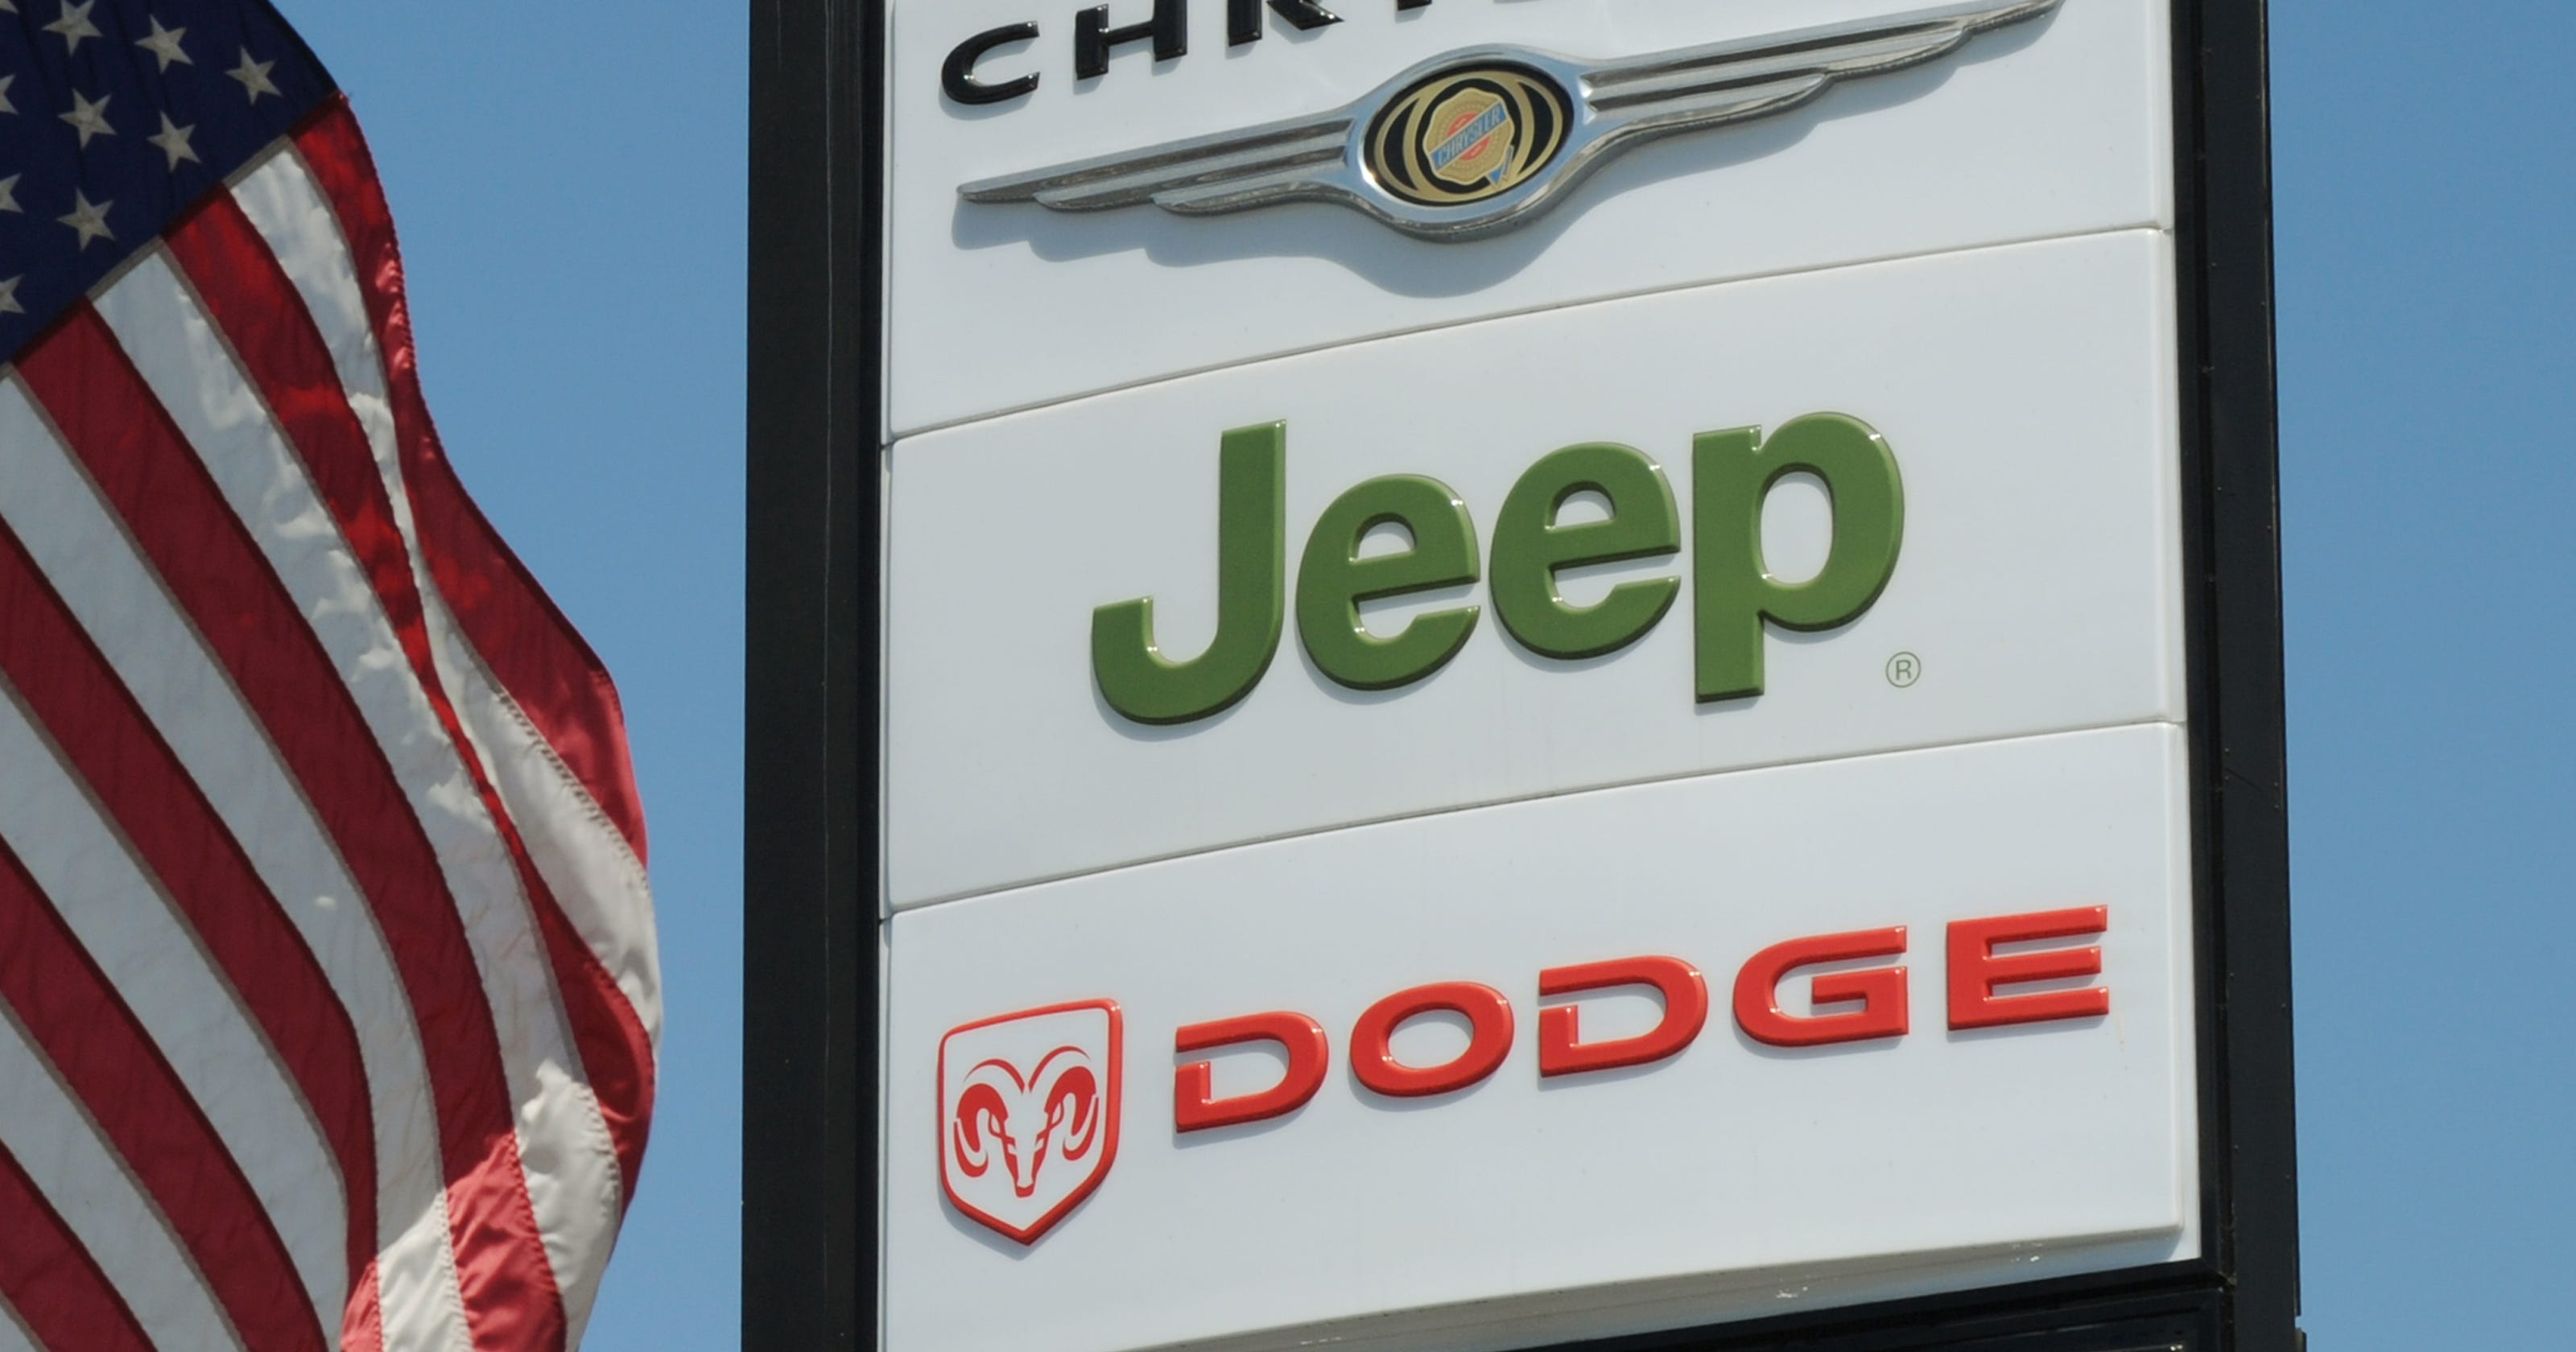 Chrysler announces deal to build Jeeps in China